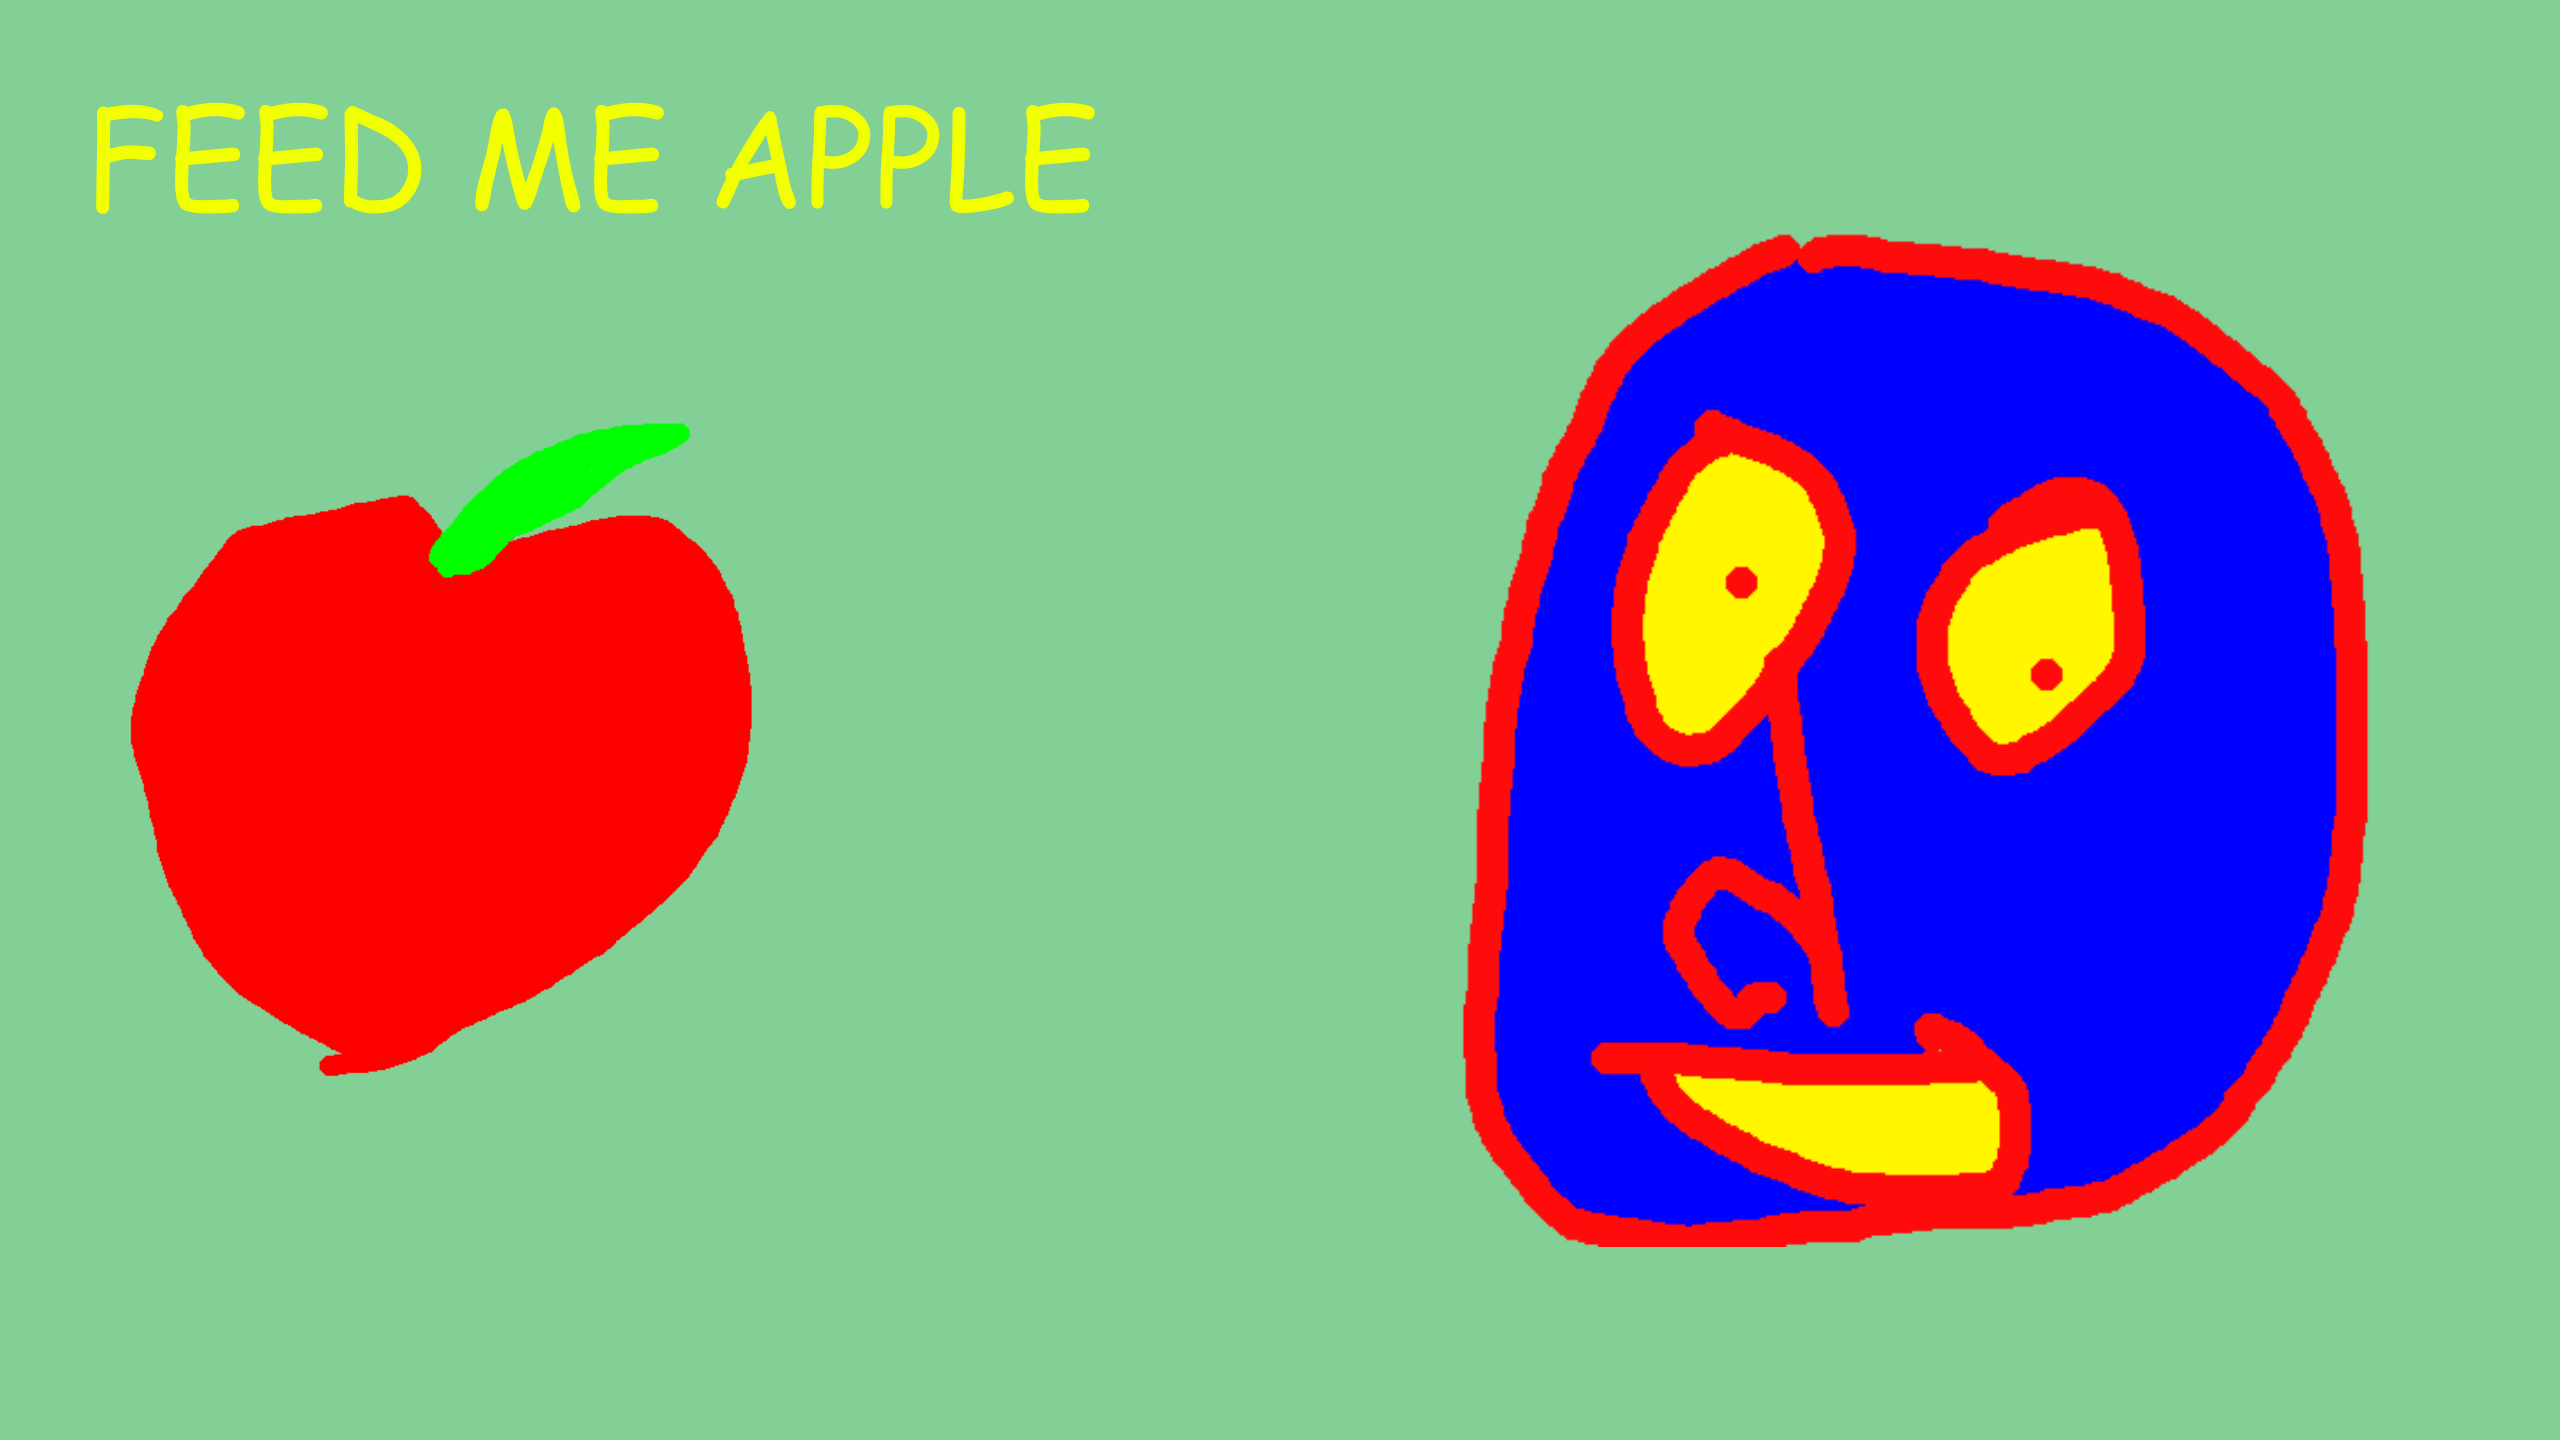 FEED ME APPLE by sebastianscaini